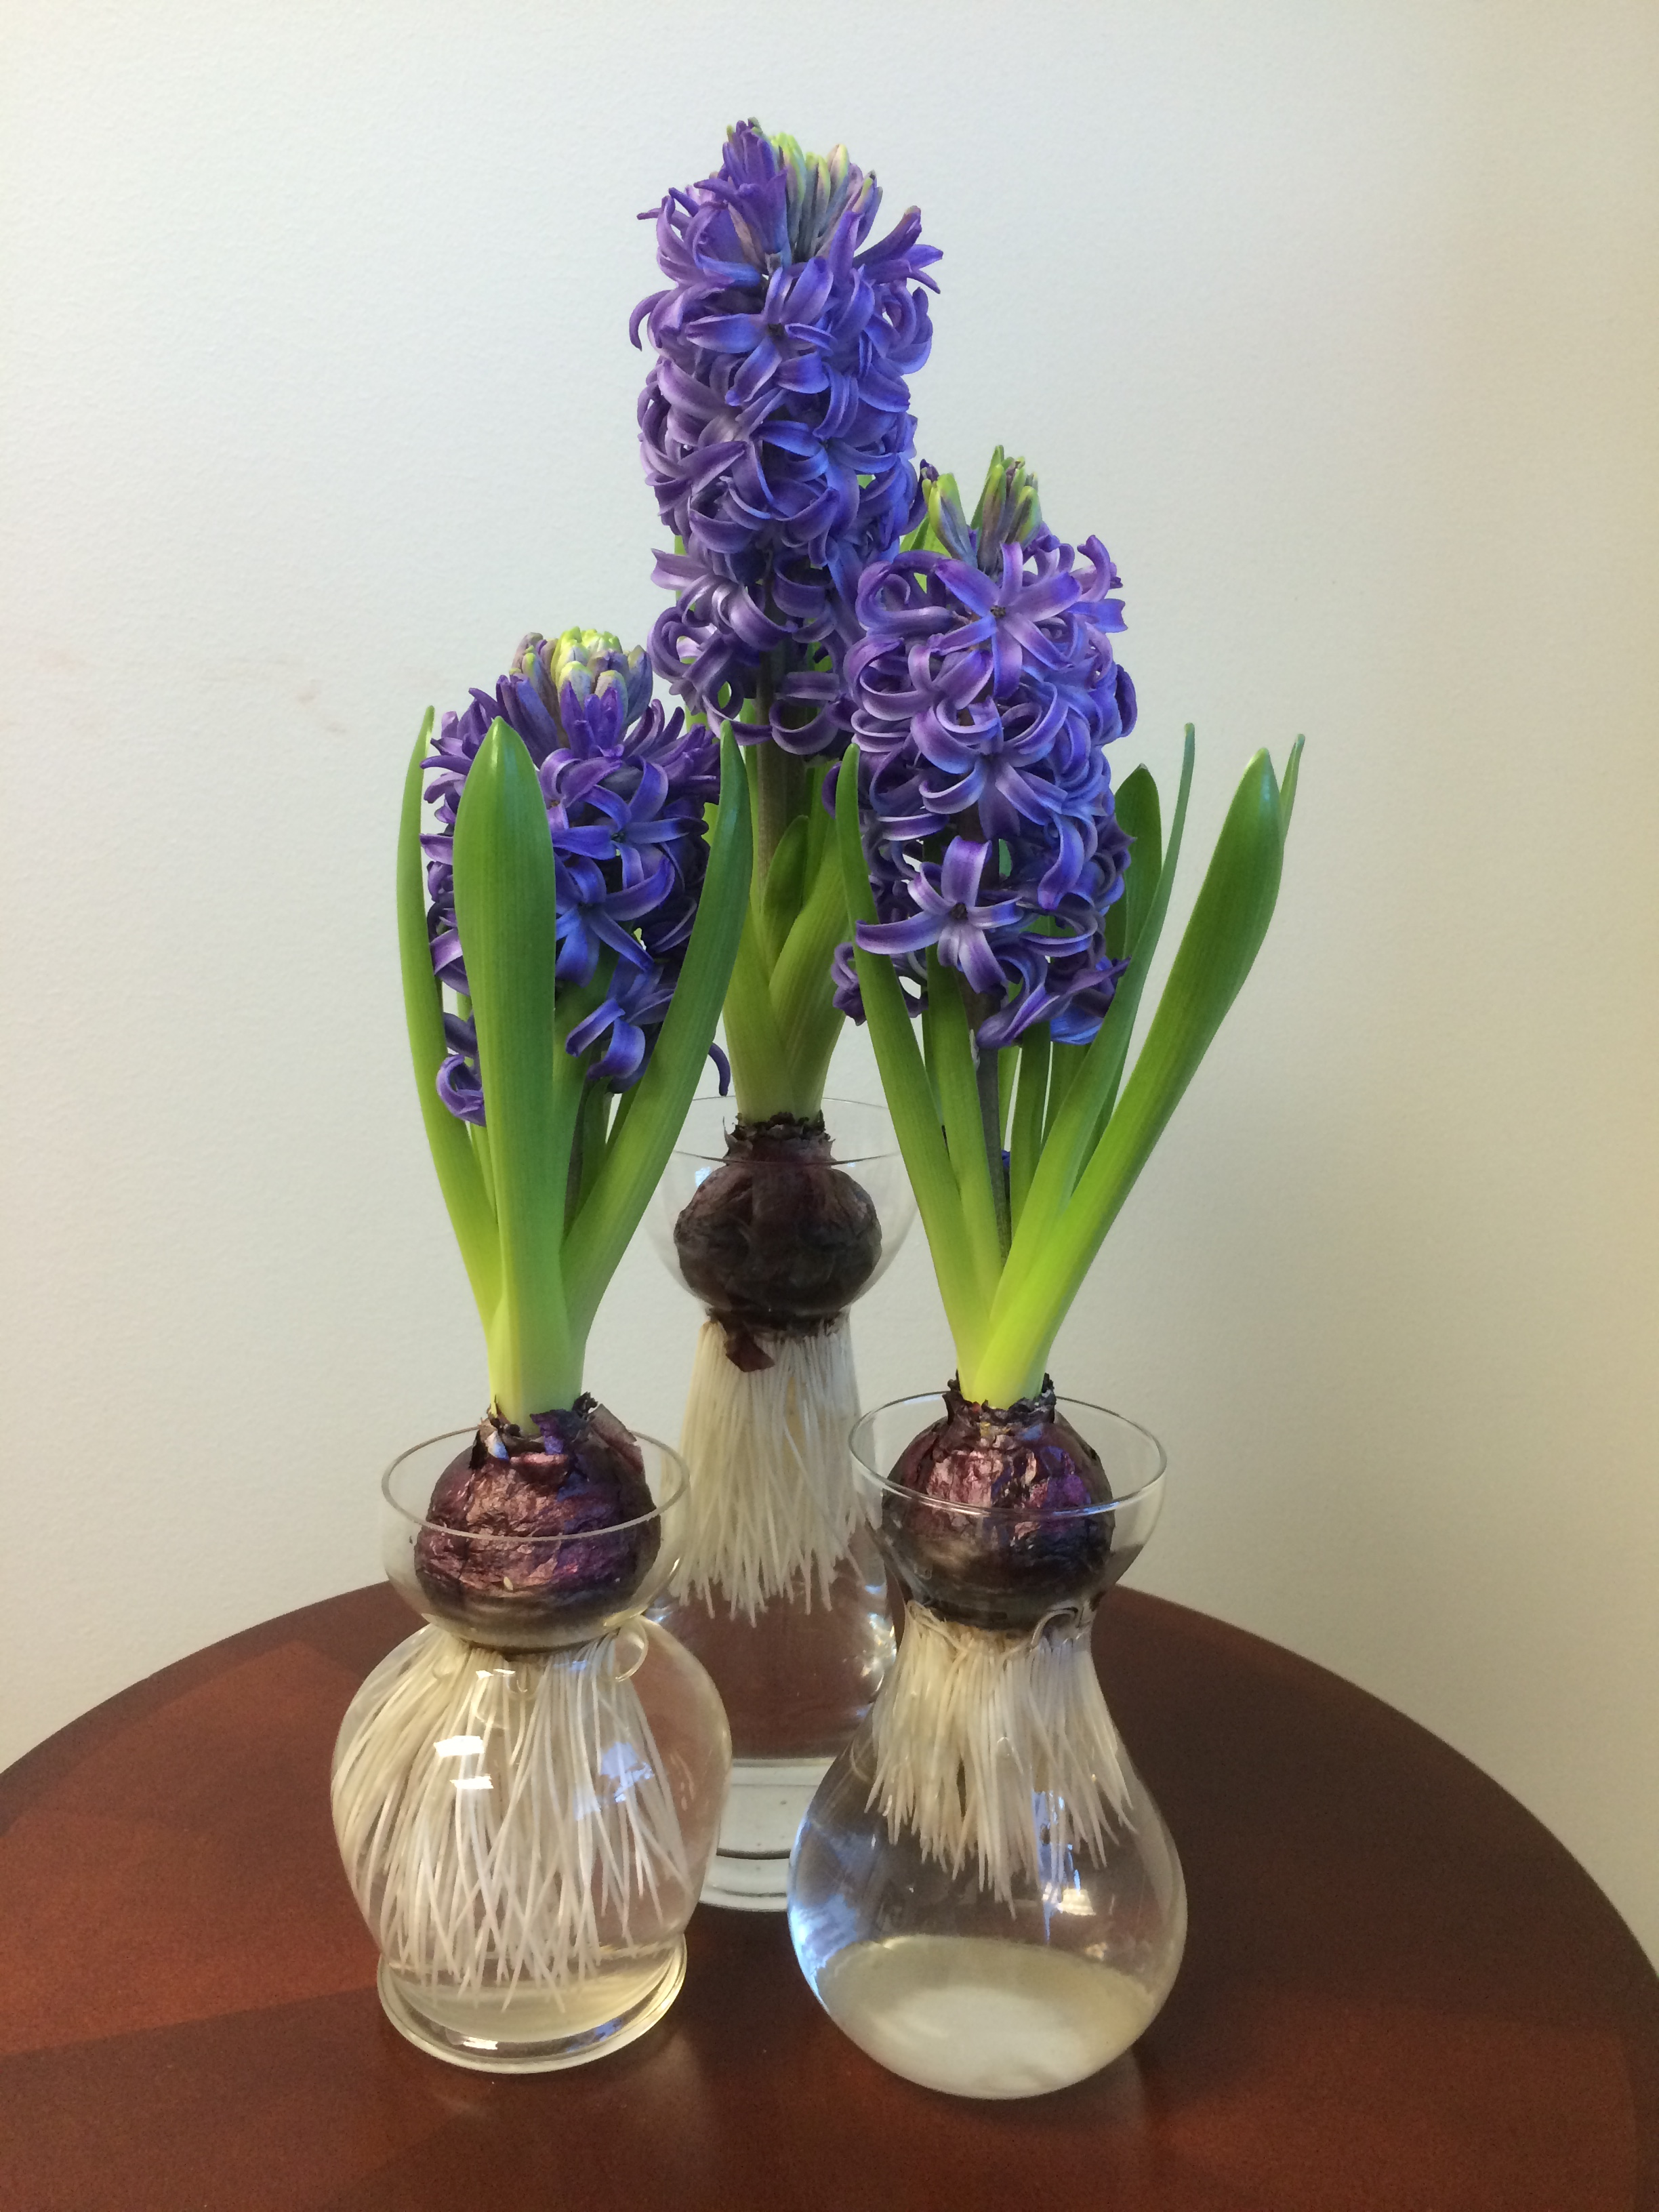 Forcing hyacinths archives pegplant hyacinth blue pearl in forcing vases reviewsmspy